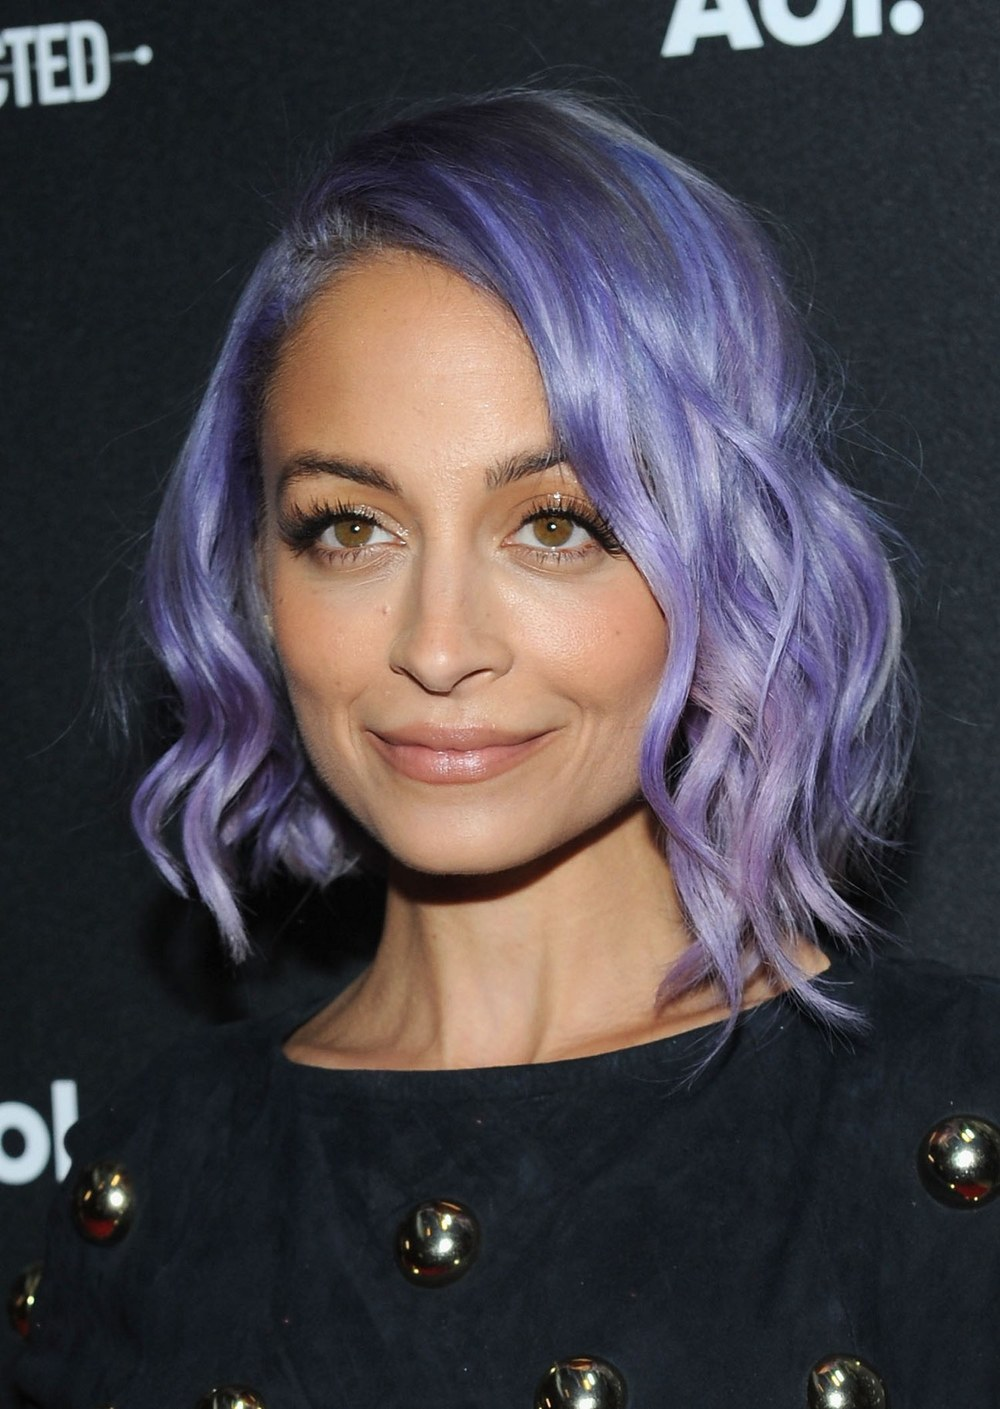 beauty-2014-04-nicole-richie-deeper-purple-hair-color-main.jpg